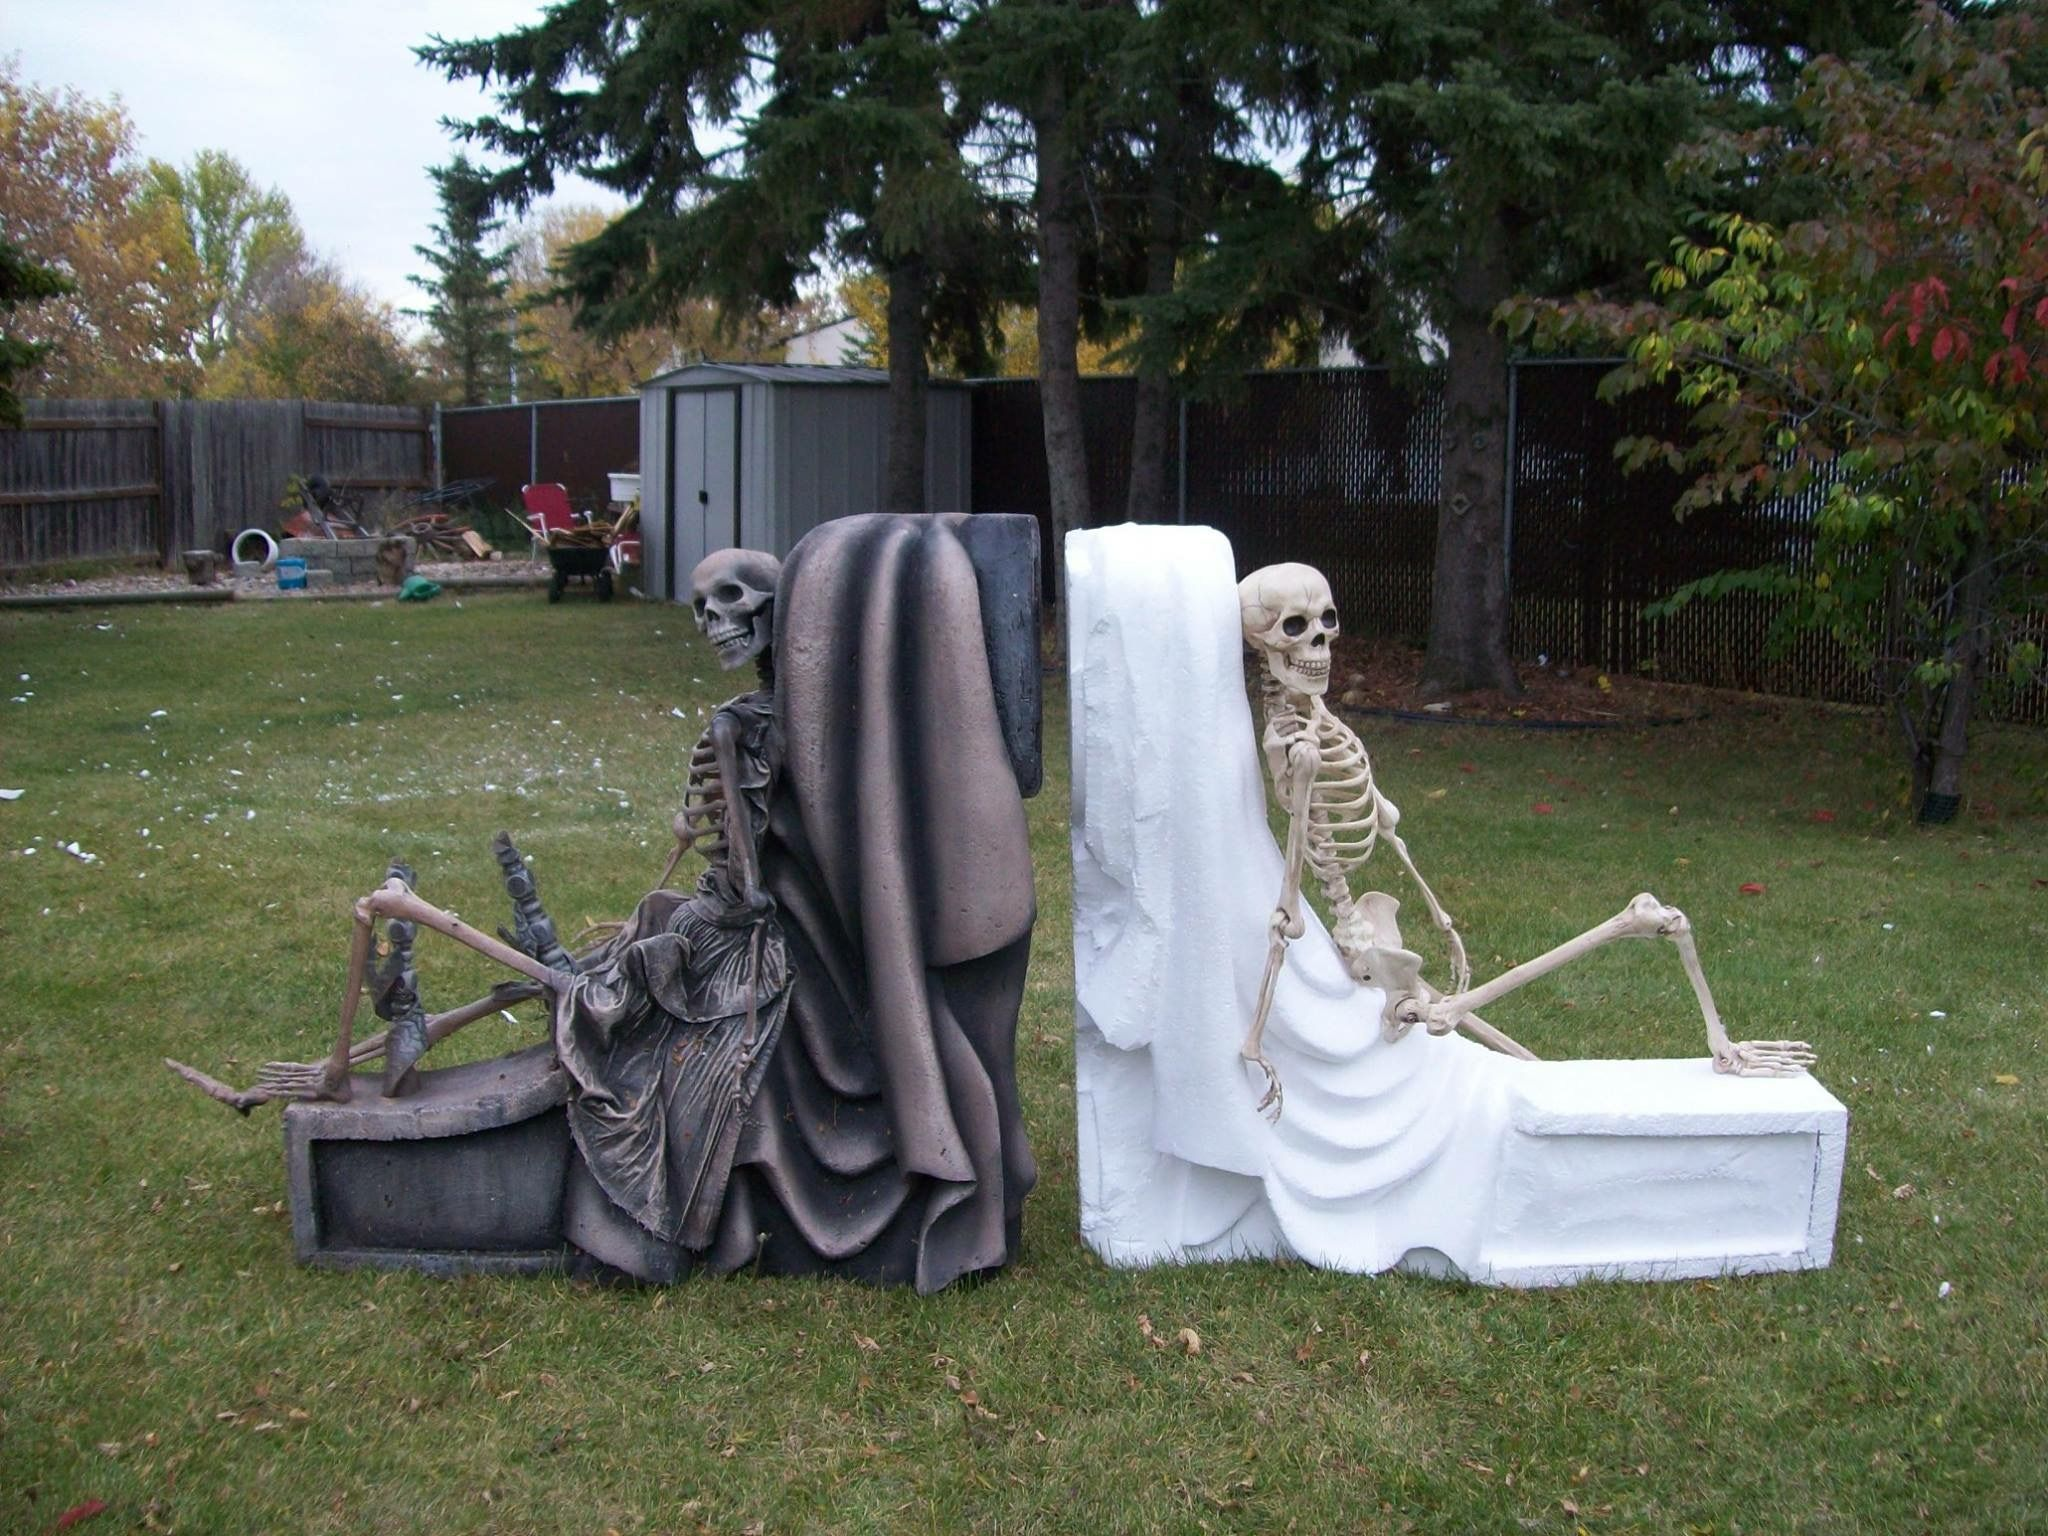 Pin by Malena vallotton on Halloween Pinterest Yard haunt - Halloween Graveyard Decorations